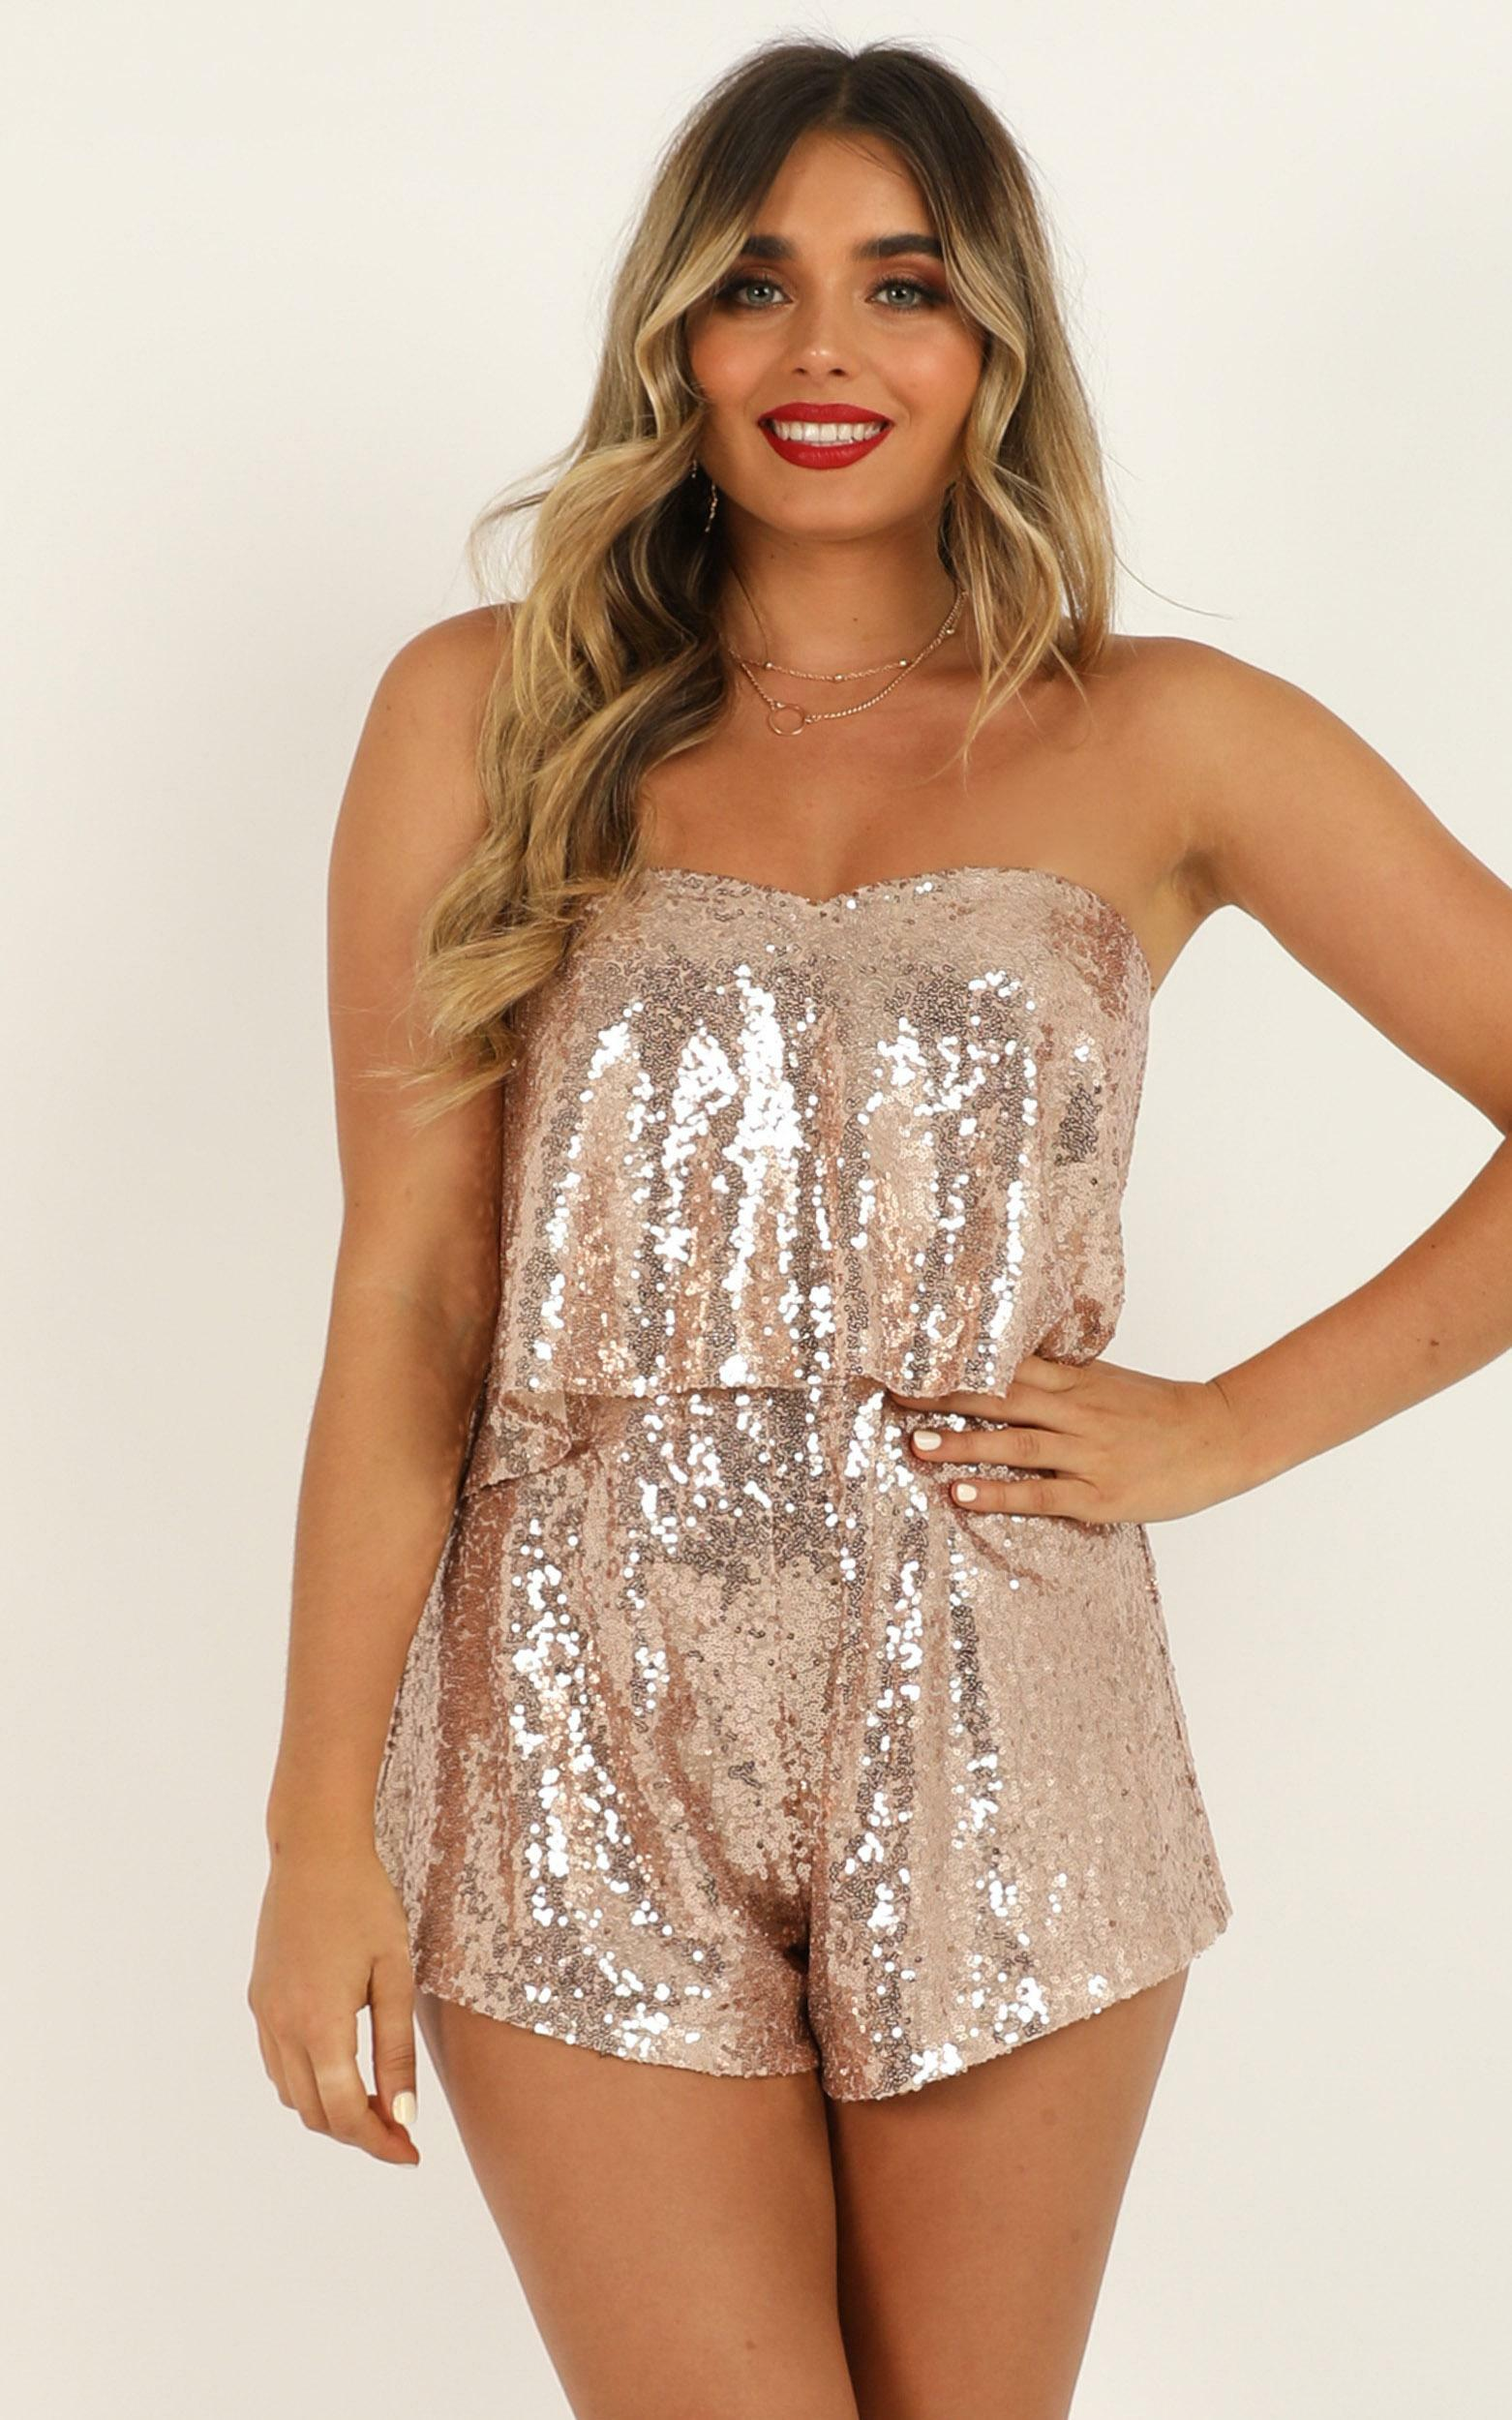 Wrap Out Of It Playsuit in rose gold sequin - 20 (XXXXL), Rose Gold, hi-res image number null